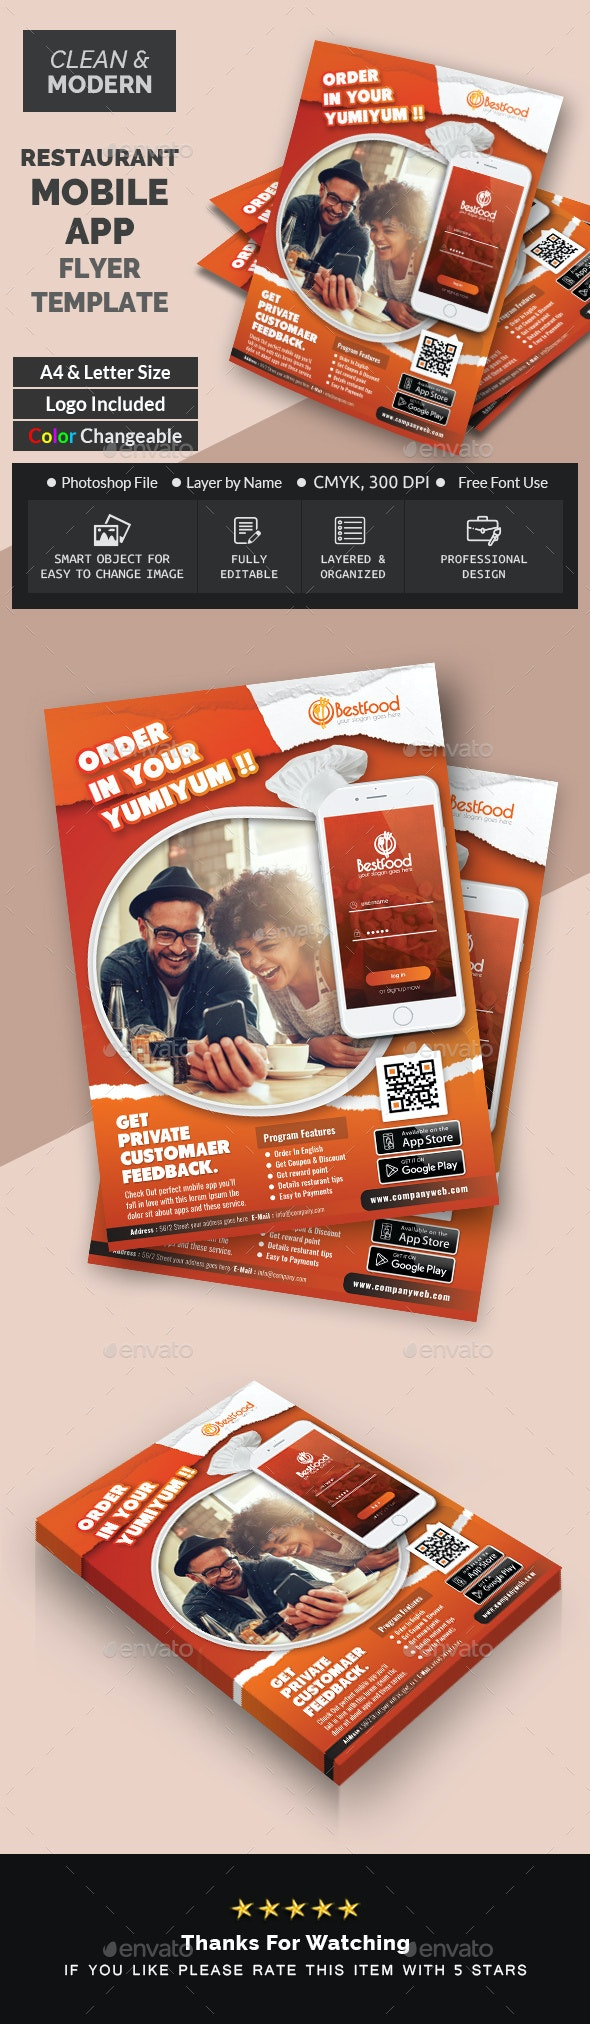 Restaurant Mobile App Flyer Templates - Corporate Flyers